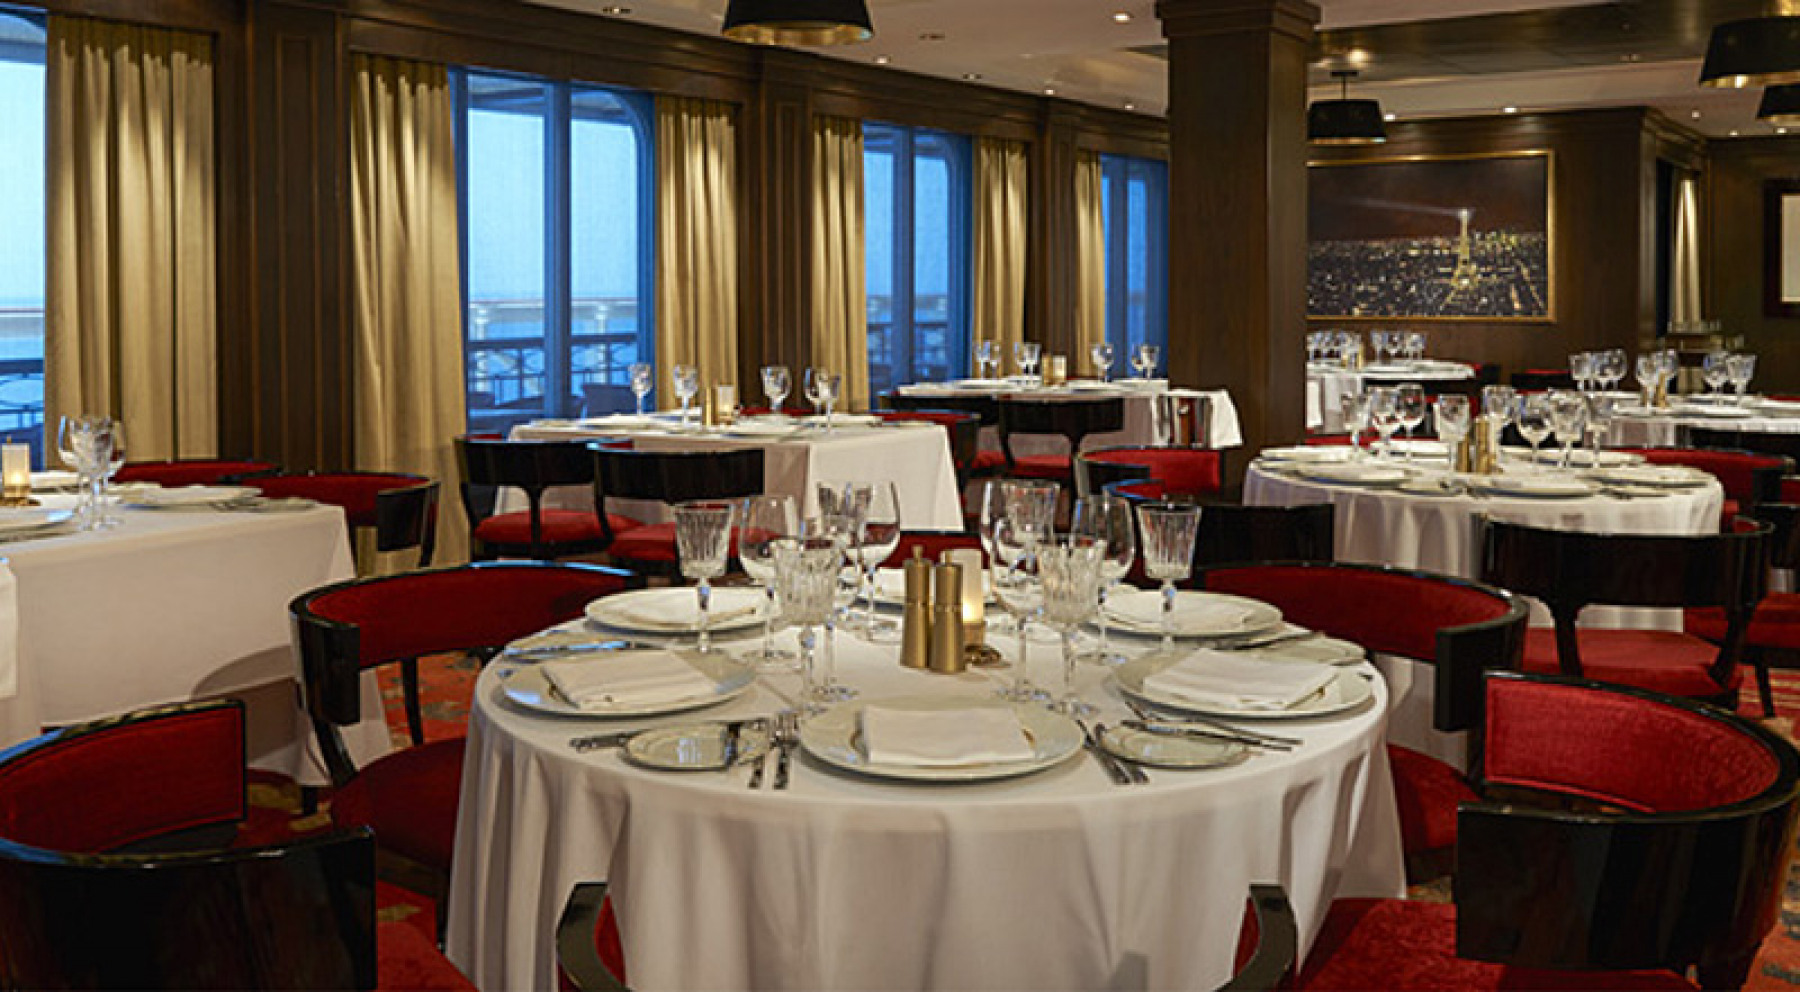 Norwegian Cruise Lines Norwegian Joy Interior Le Bistro.jpg